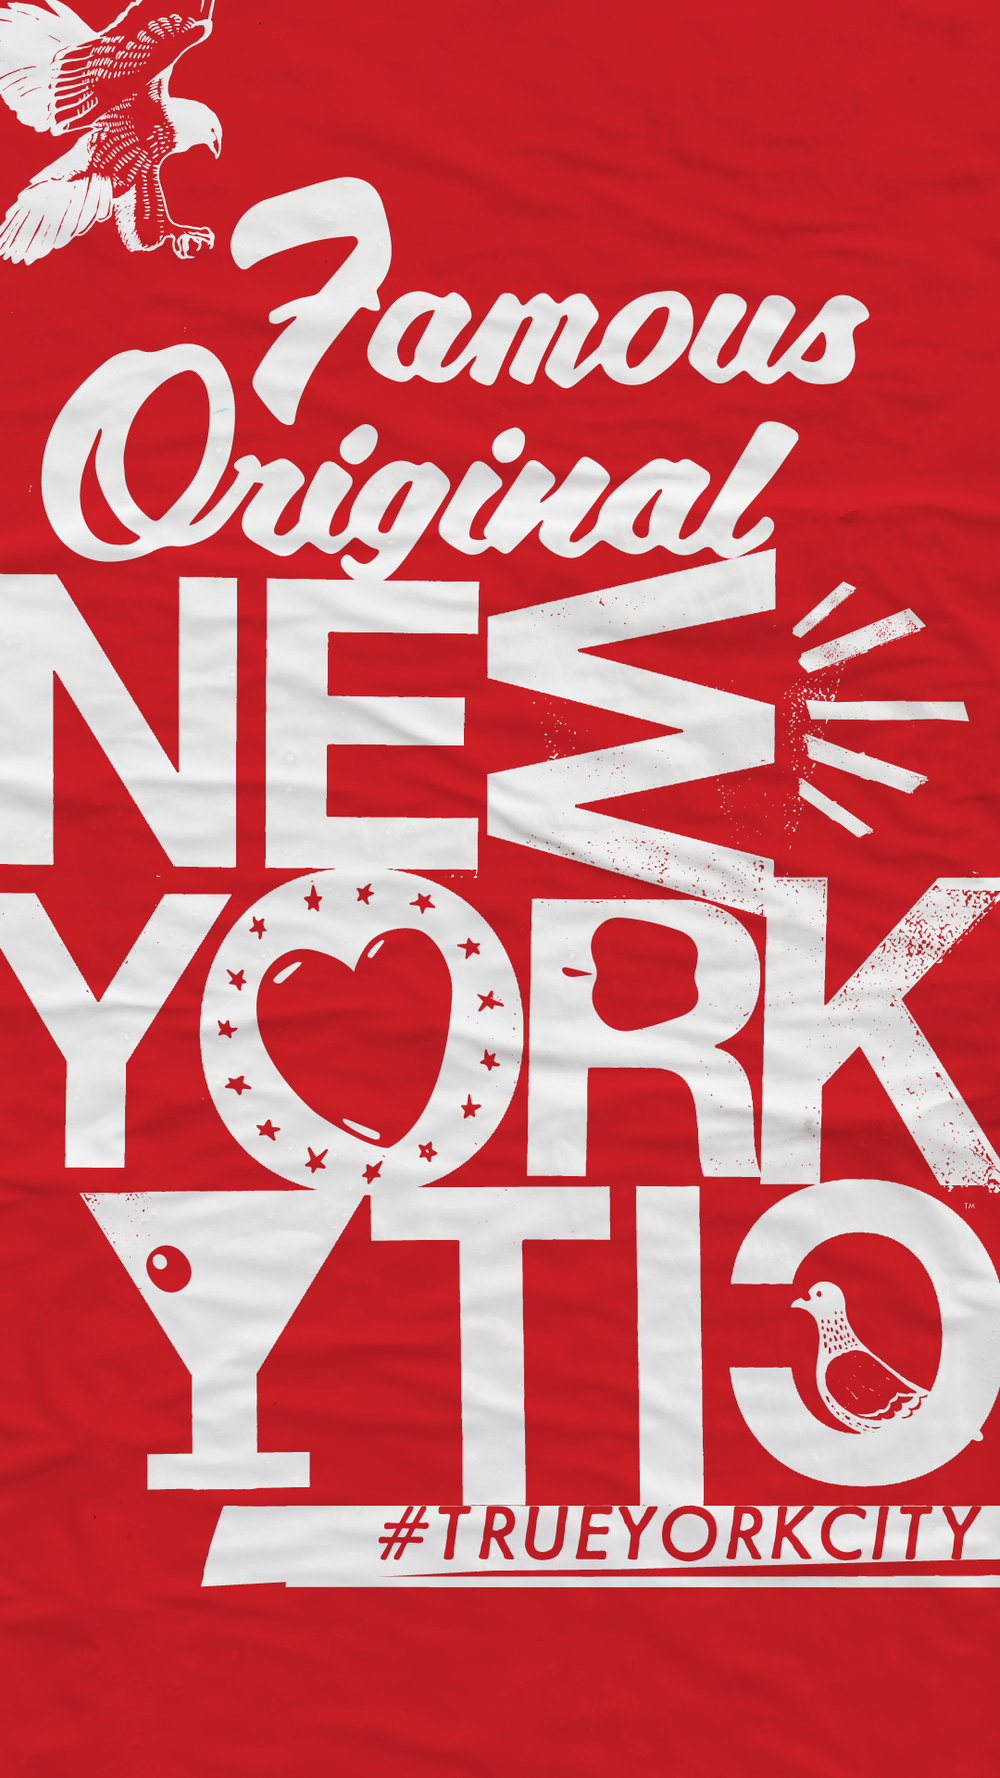 NYC -NYCGO_TourismCampaign_Link_NYC.jpg